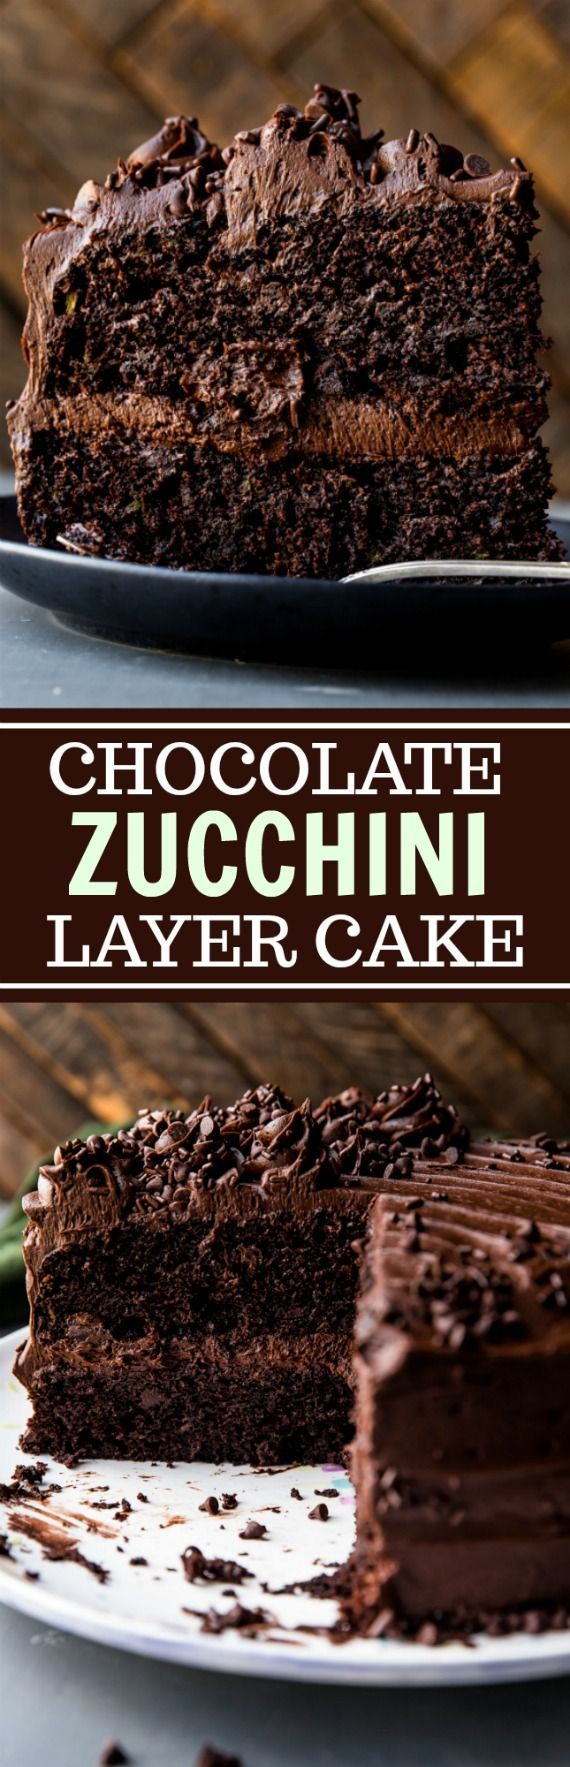 Super moist and rich chocolate zucchini cake! You can't taste the 3 cups of zucchini inside this double chocolate layer cake! Recipe on sallysbakingaddiction.com